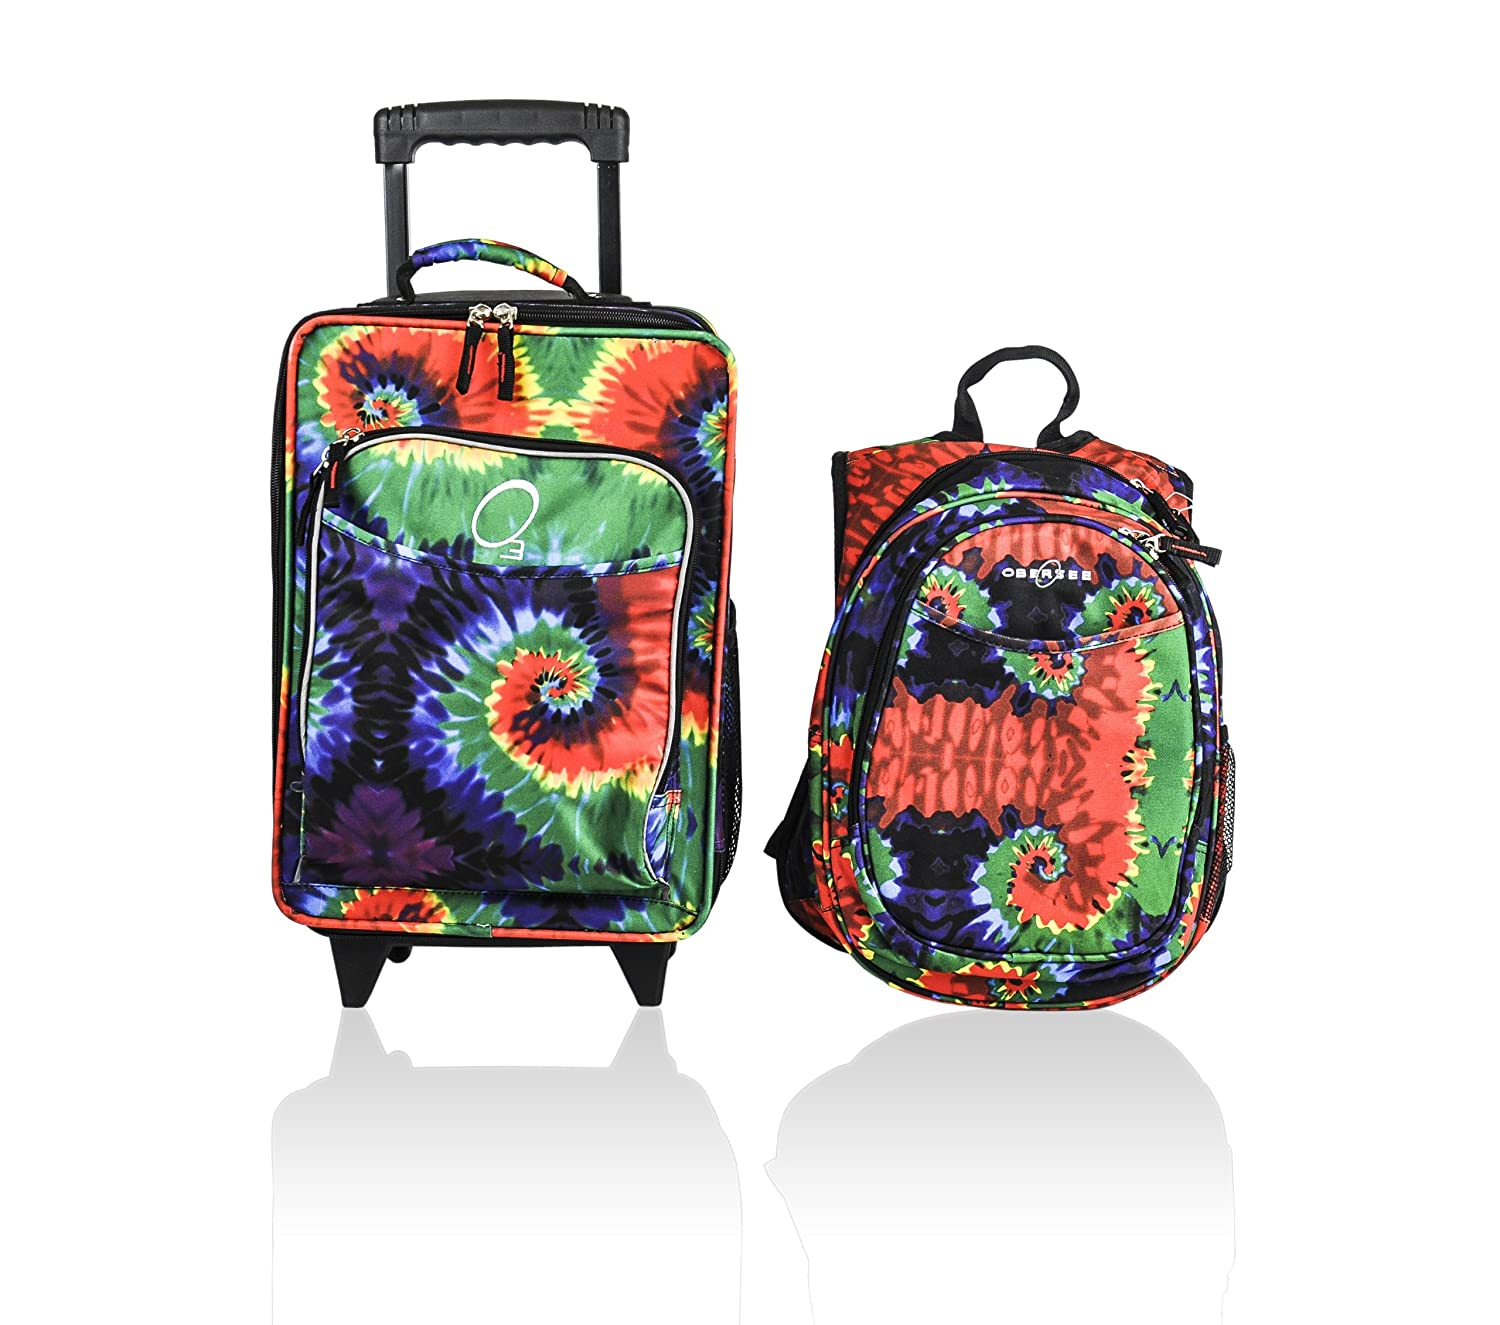 Obersee Kids Luggage and Backpack Set with Integrated Cooler, Tie Dye by Obersee   B007R9S9J6